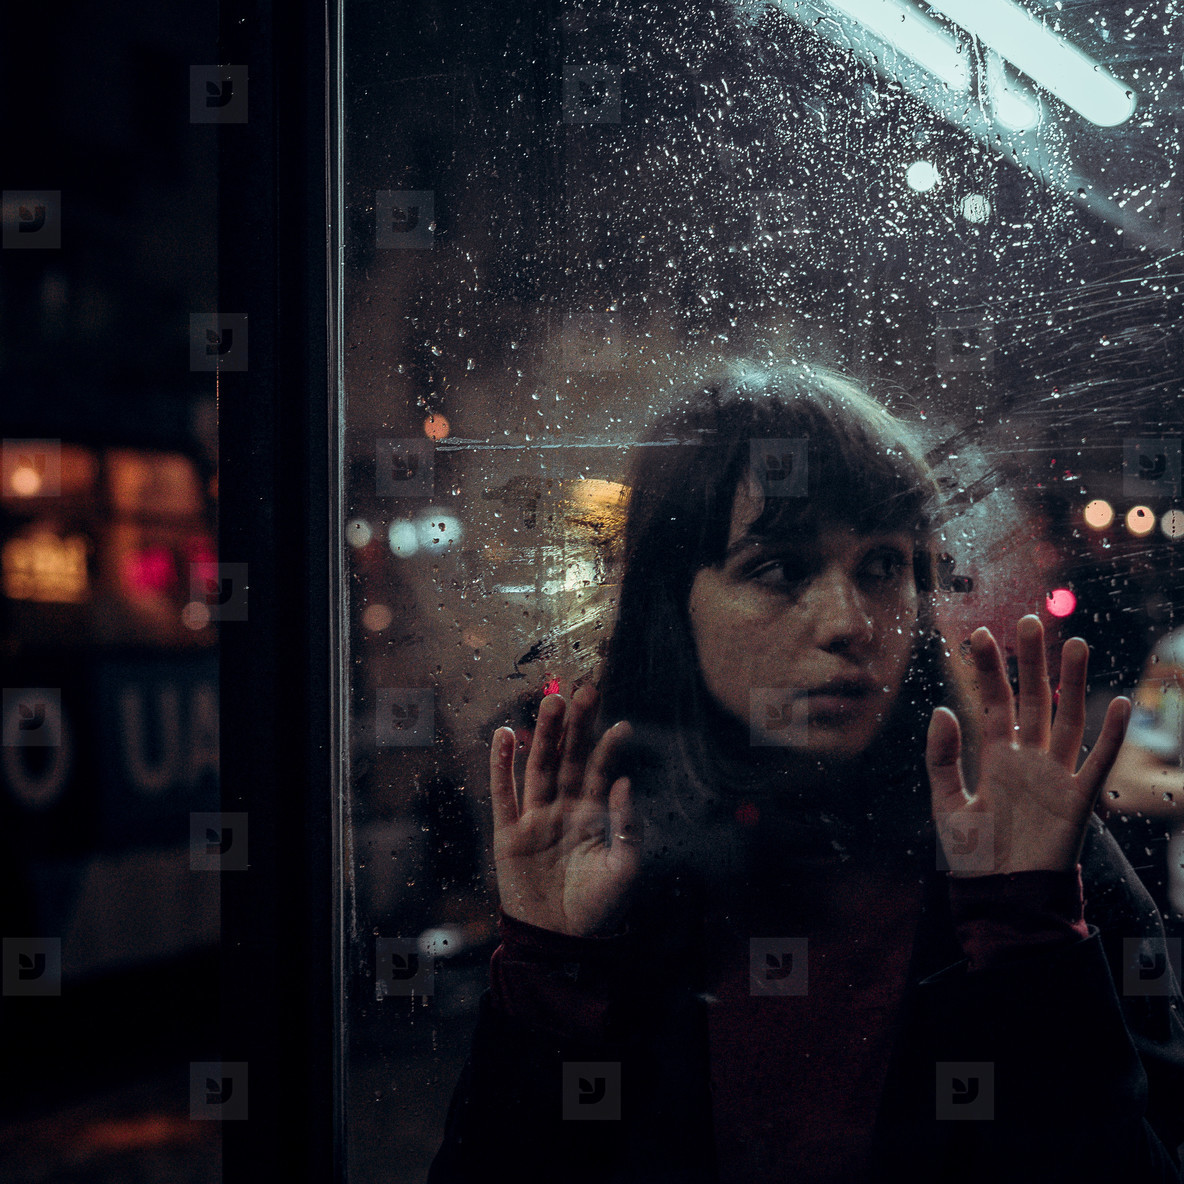 sad girl behind rain glass on night city background